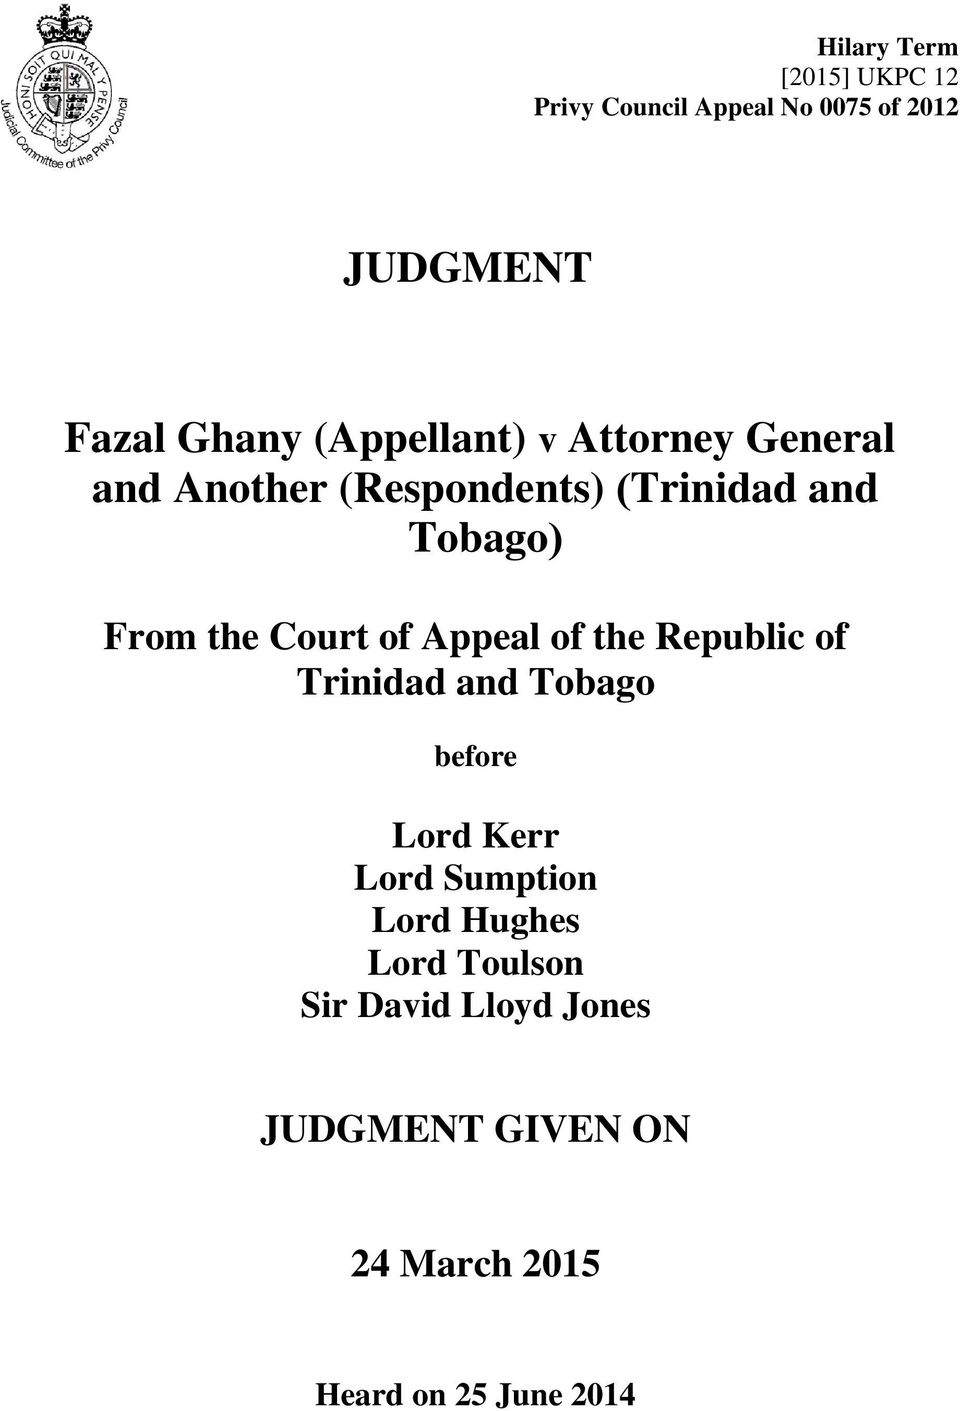 Court of Appeal of the Republic of Trinidad and Tobago before Lord Kerr Lord Sumption